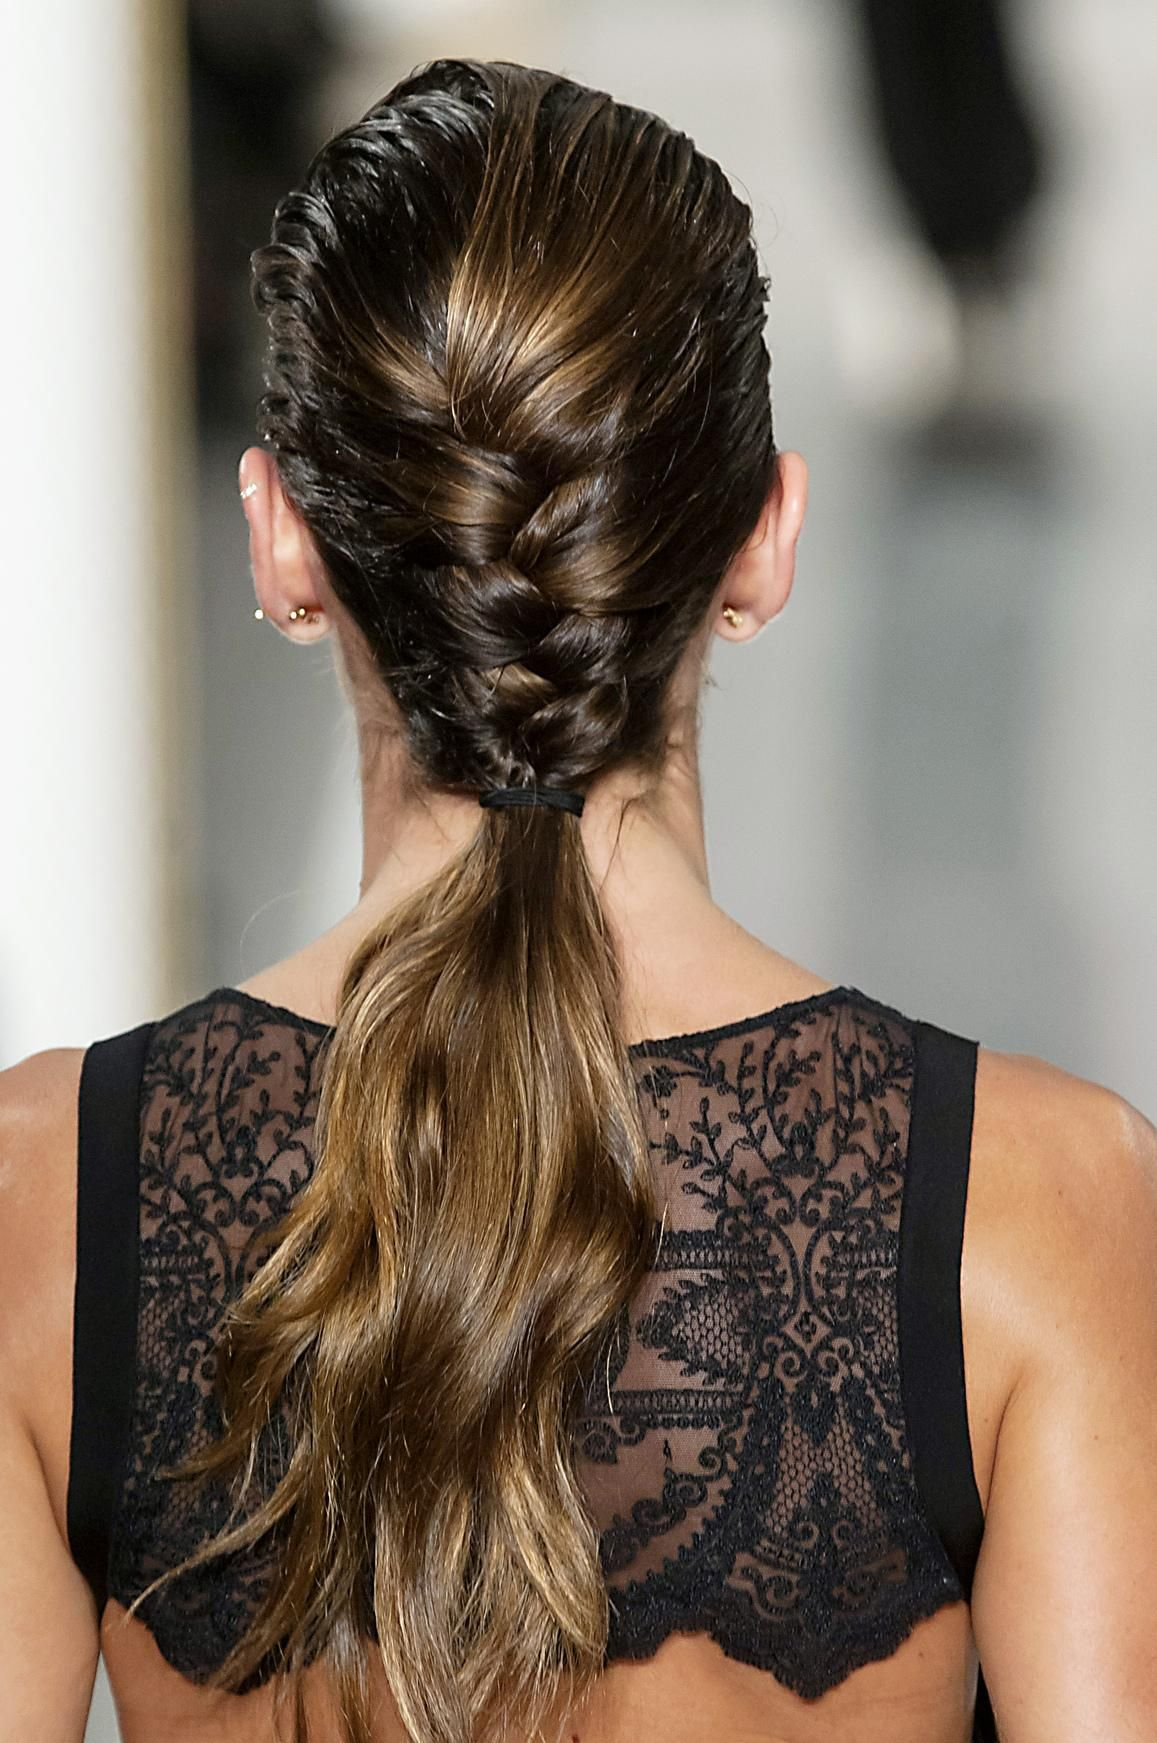 10 hairstyles to help hide outgrown roots | braided